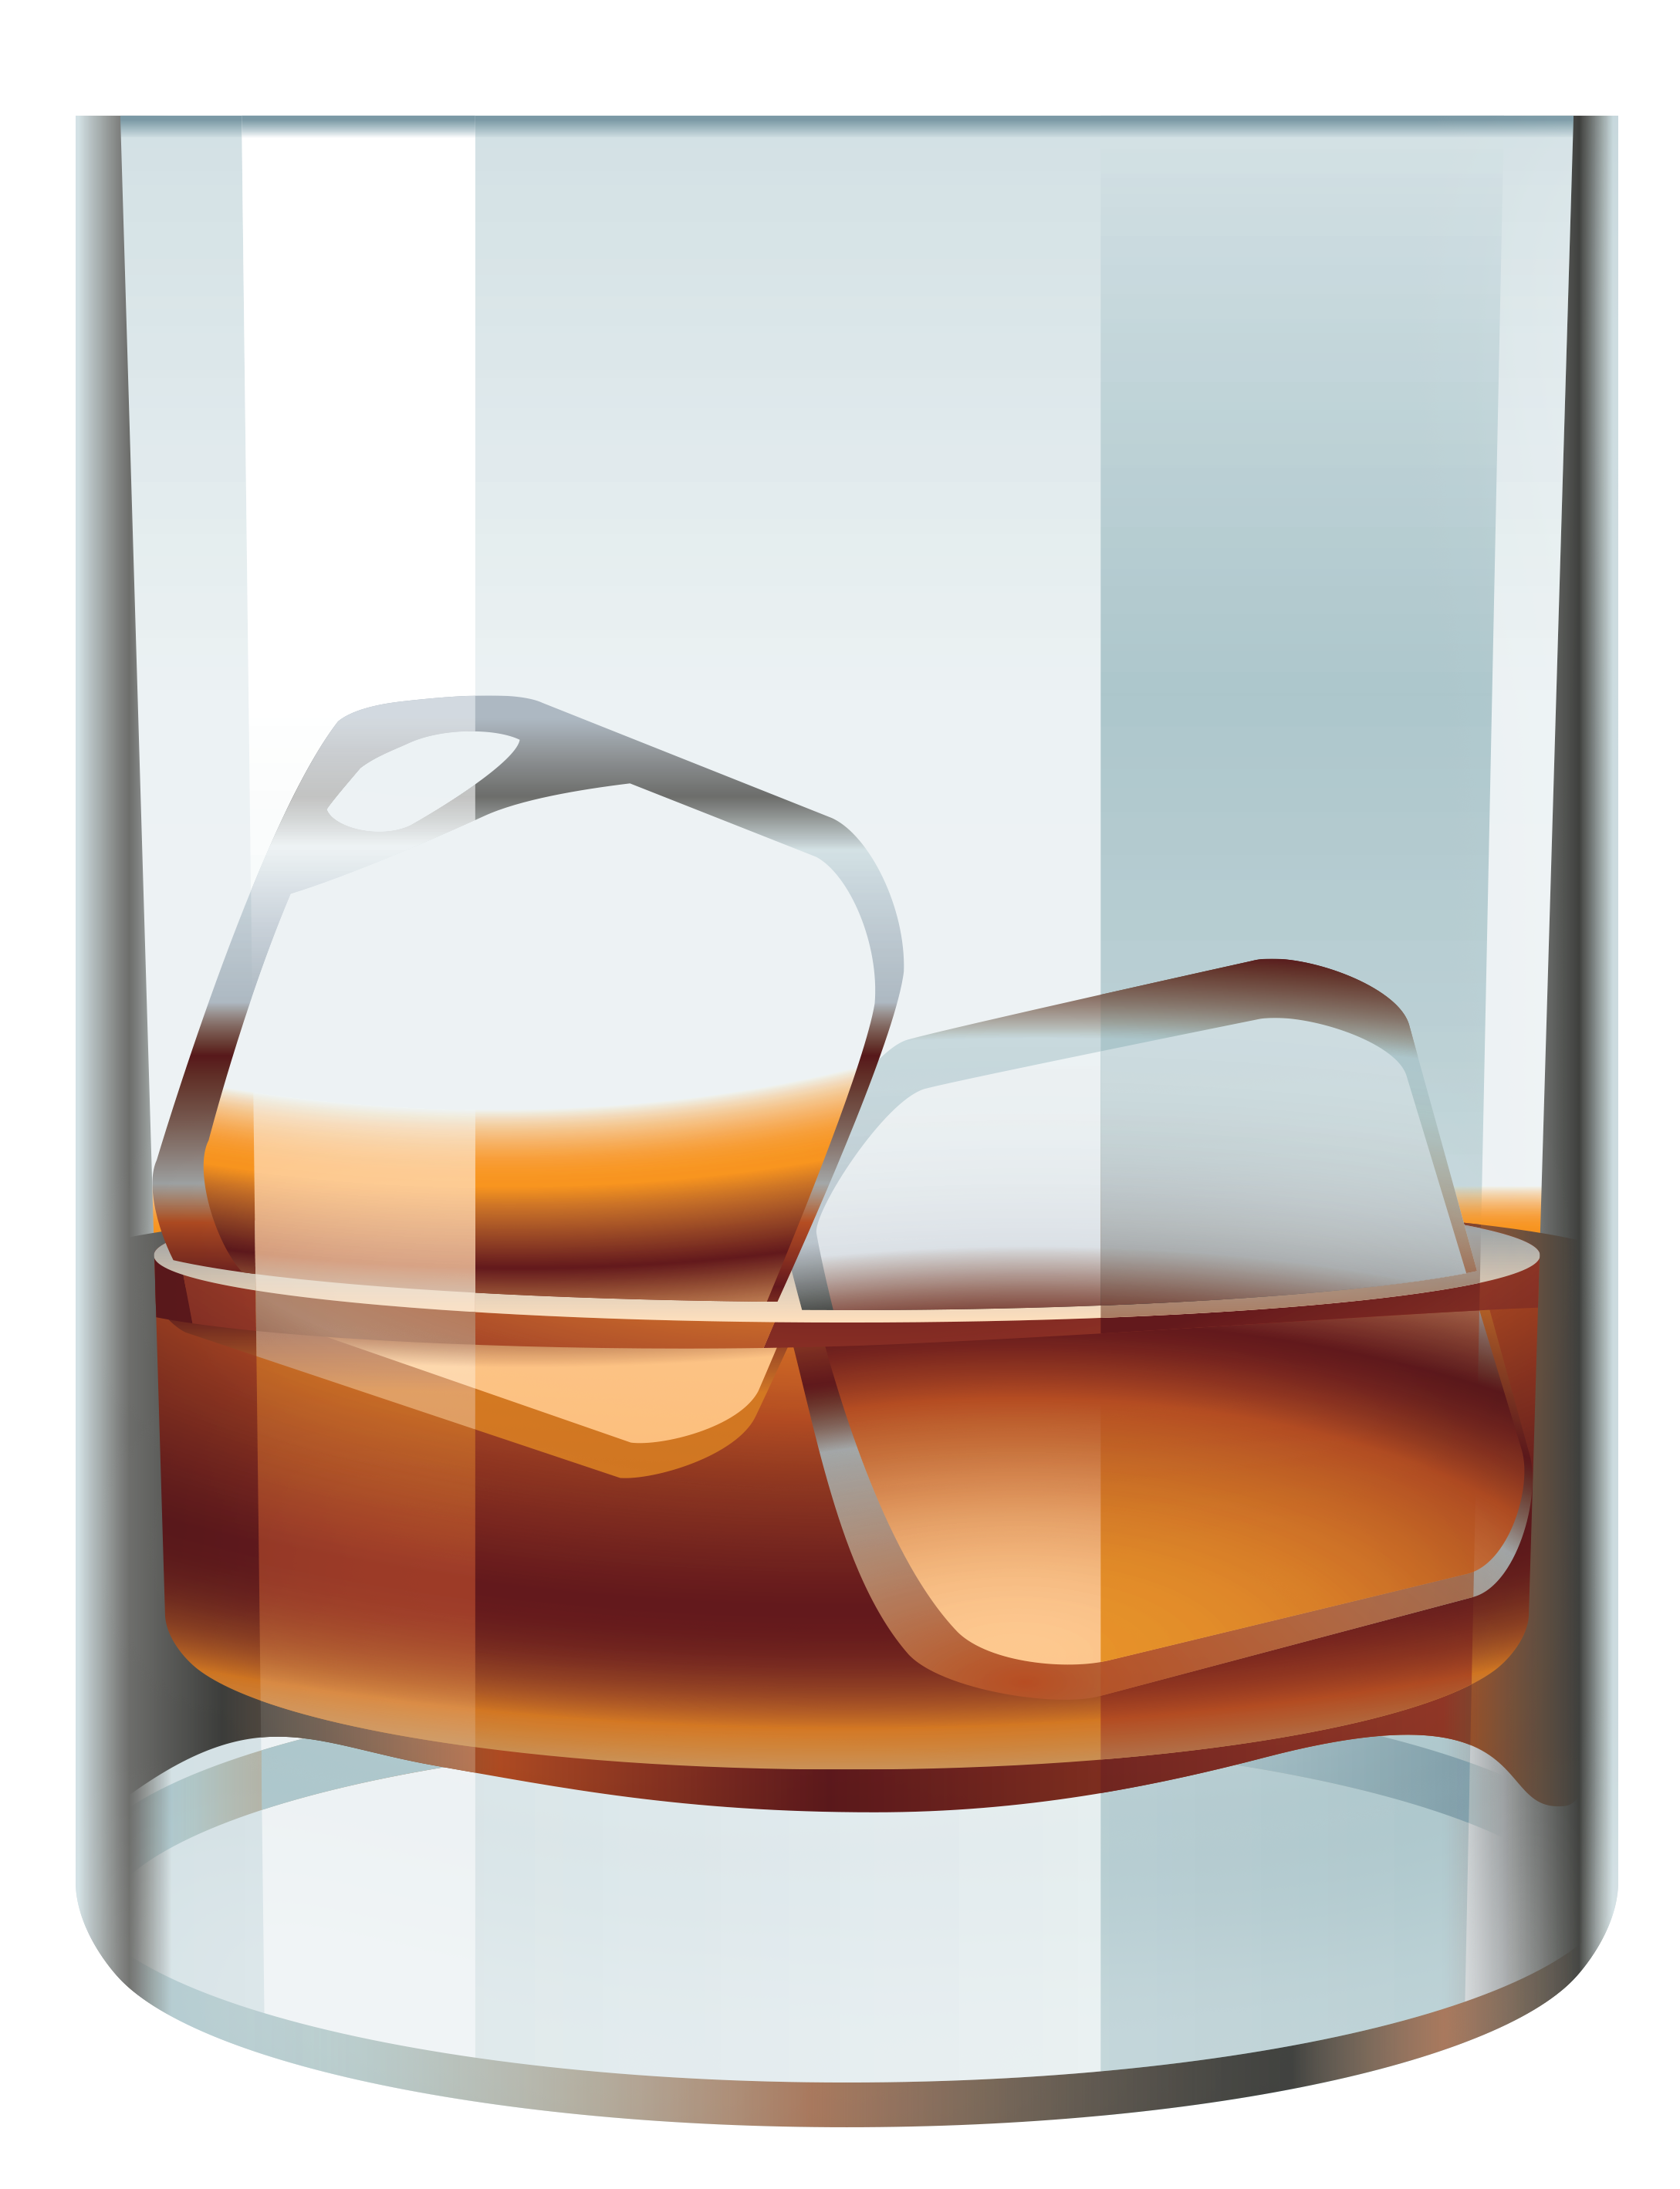 Cup clipart vector. Whisky pinart drink stack